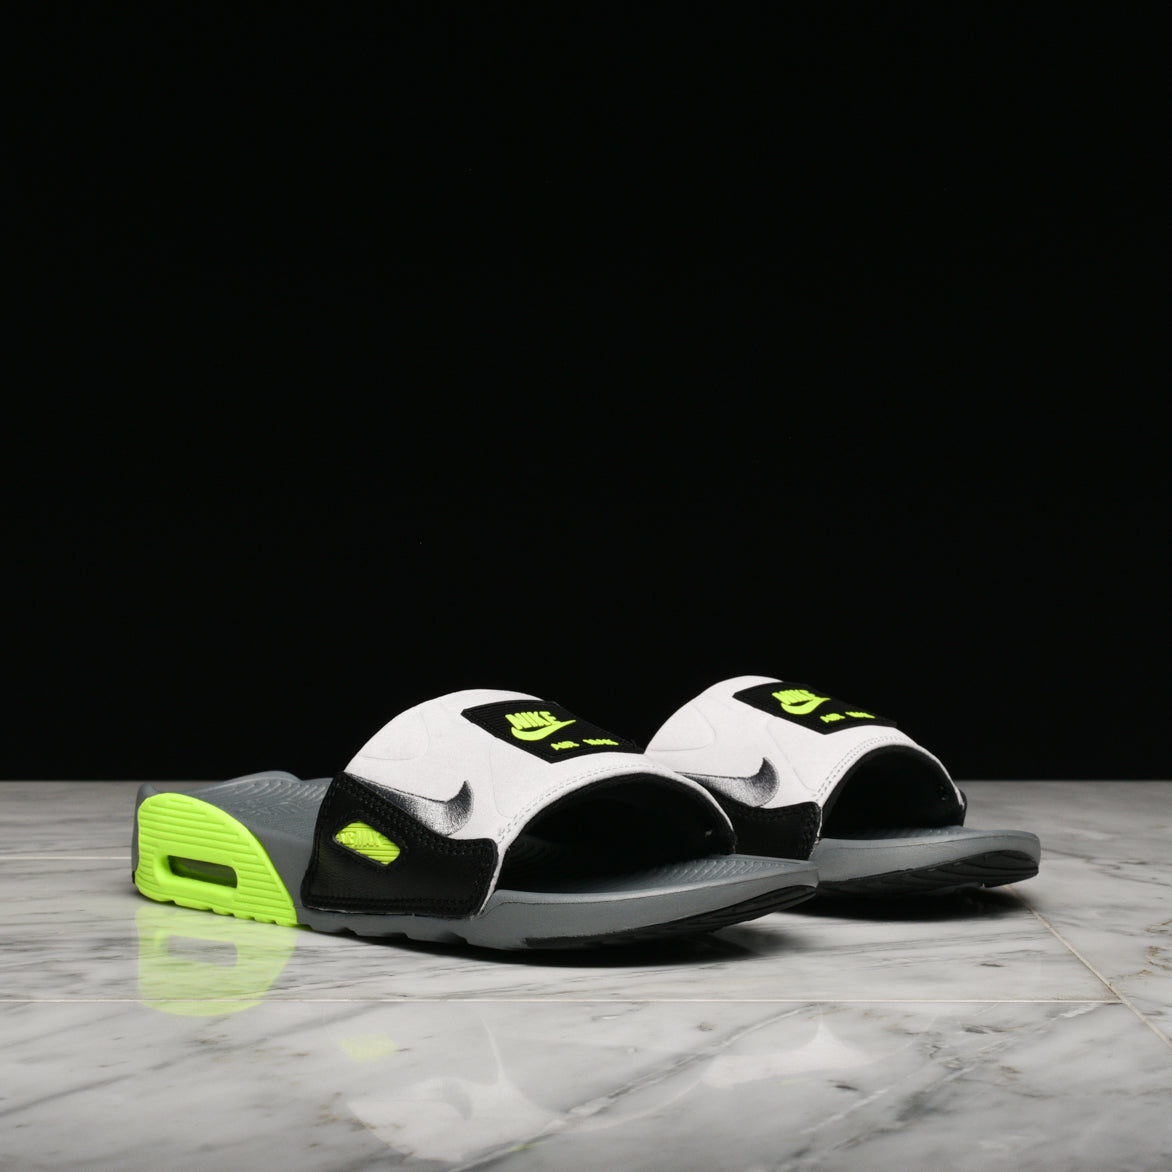 WMNS AIR MAX 90 SLIDE - GREY / VOLT